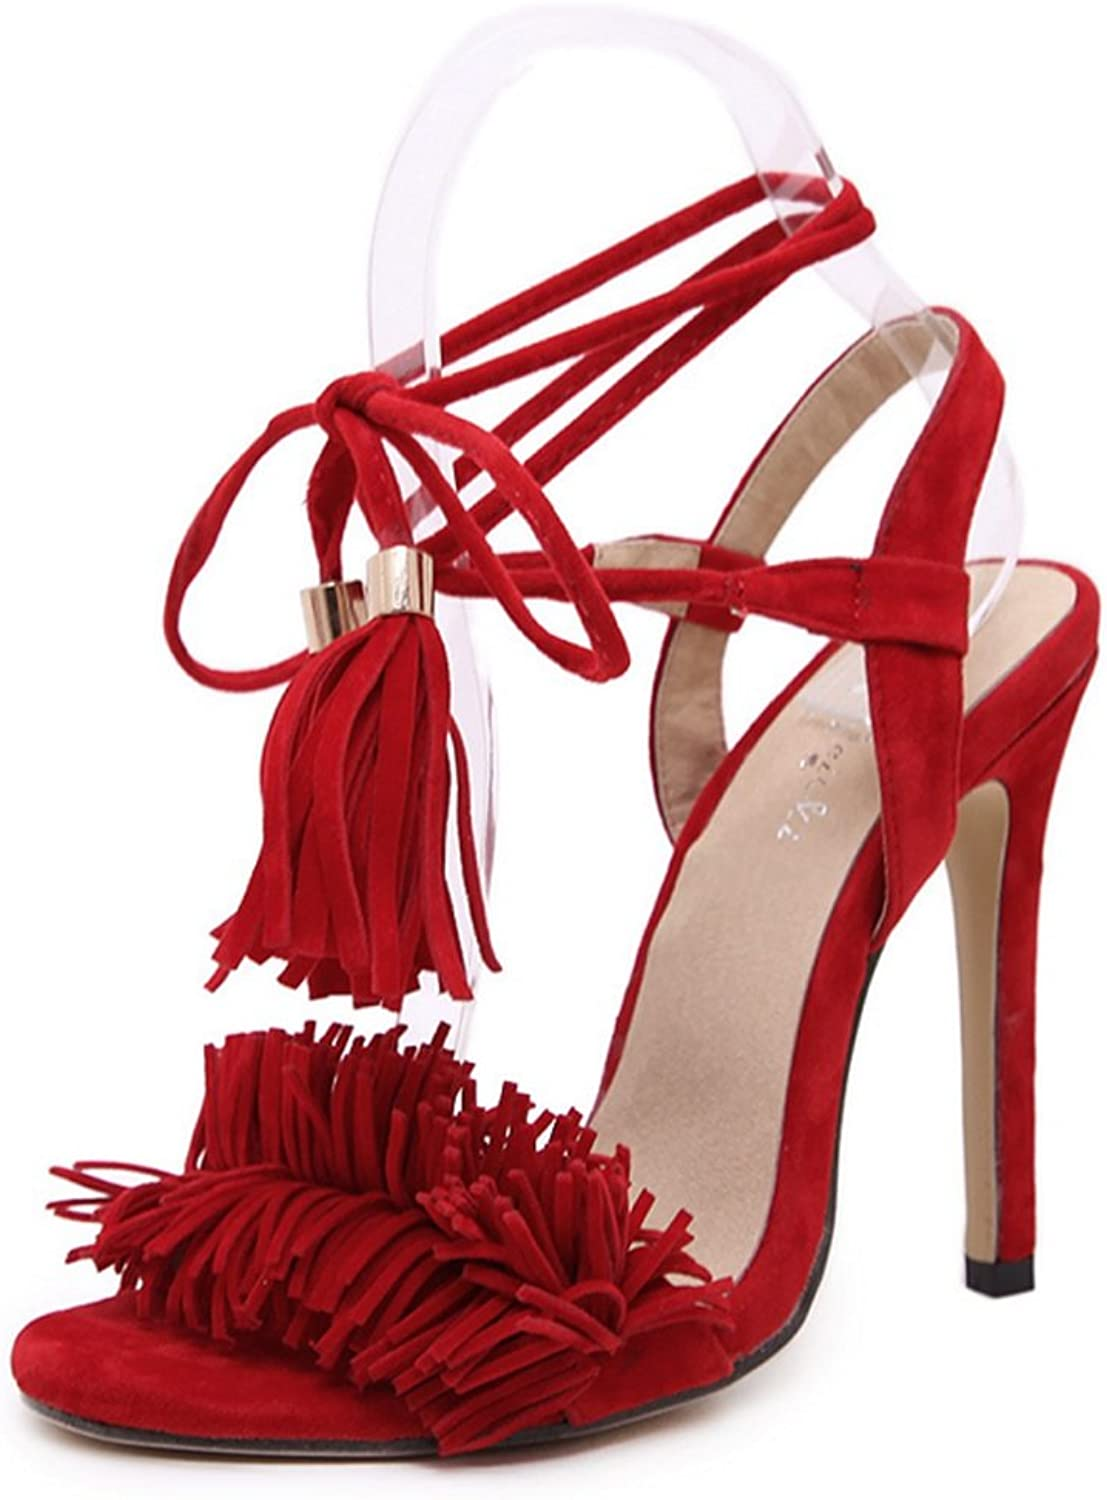 LZWSMGS Summer Ladies Suede Sandals Tassels Cross Straps High Heels Street Party Wedding shoes 35-40cm Ladies Sandals (color   Red, Size   7 US)